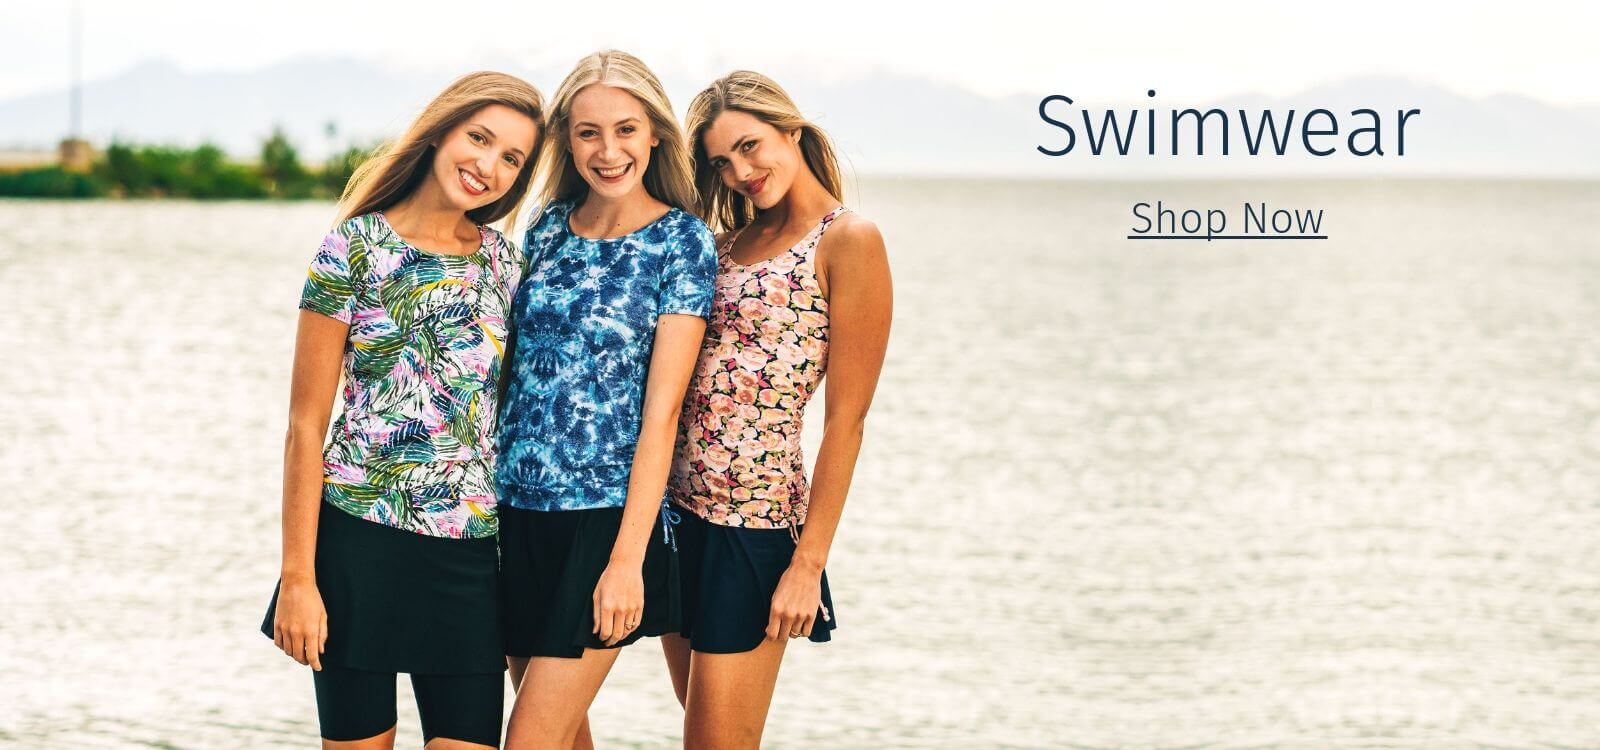 ccefe091e3f0 Our trendy modest clothing comes in all sizes, patterns & styles. From  modest designs for mom to fashion apparel for college ladies, there's  nothing ...